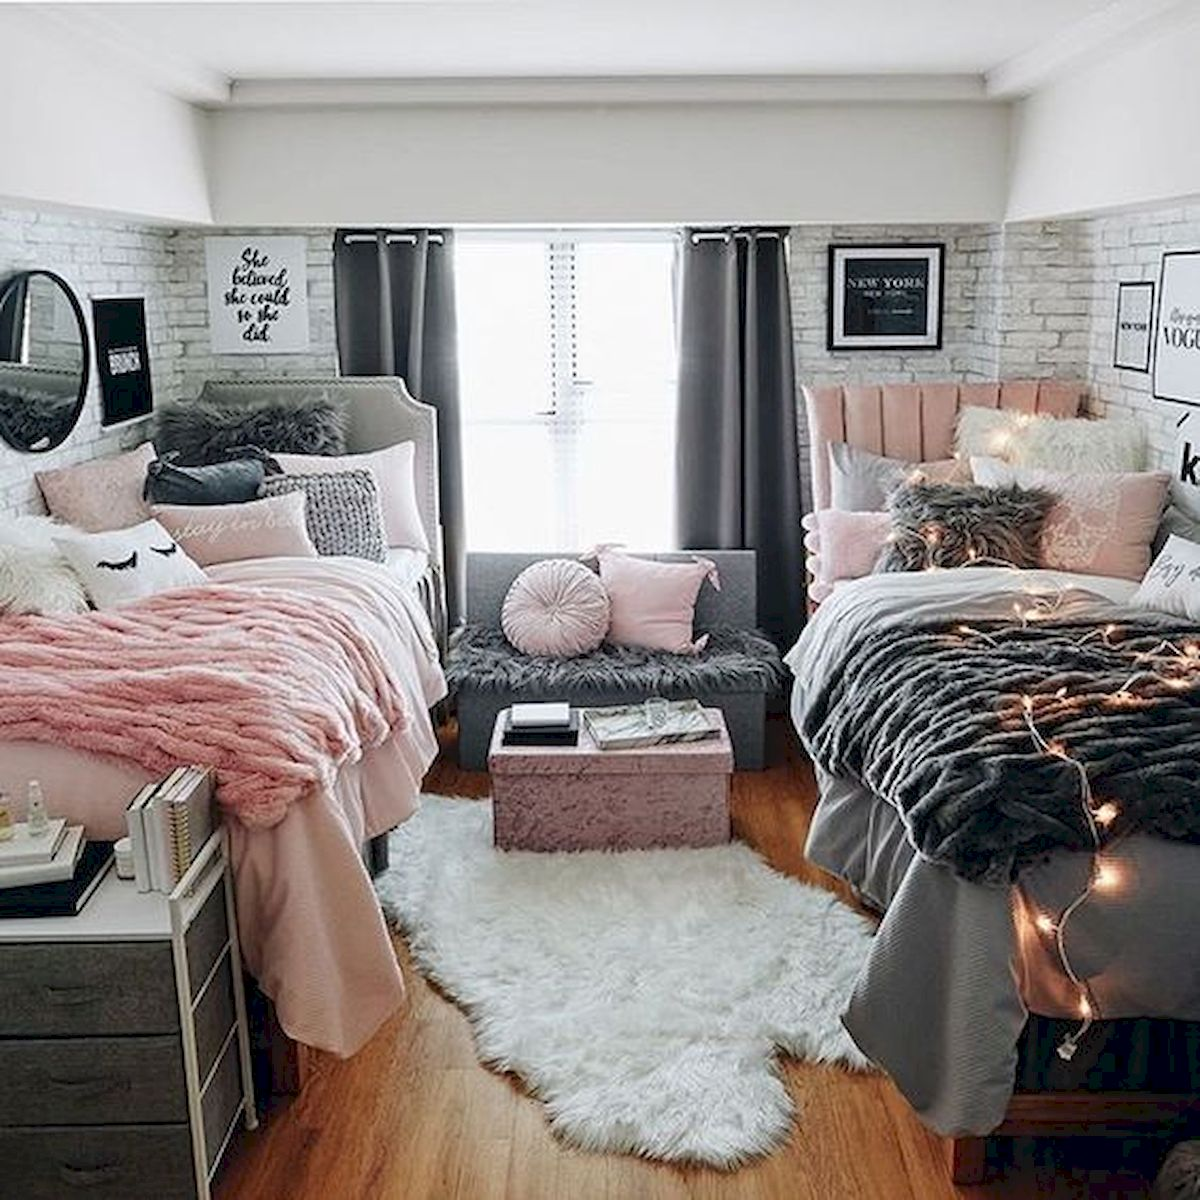 33 Awesome Aesthetic Bedroom Decor Ideas (1)